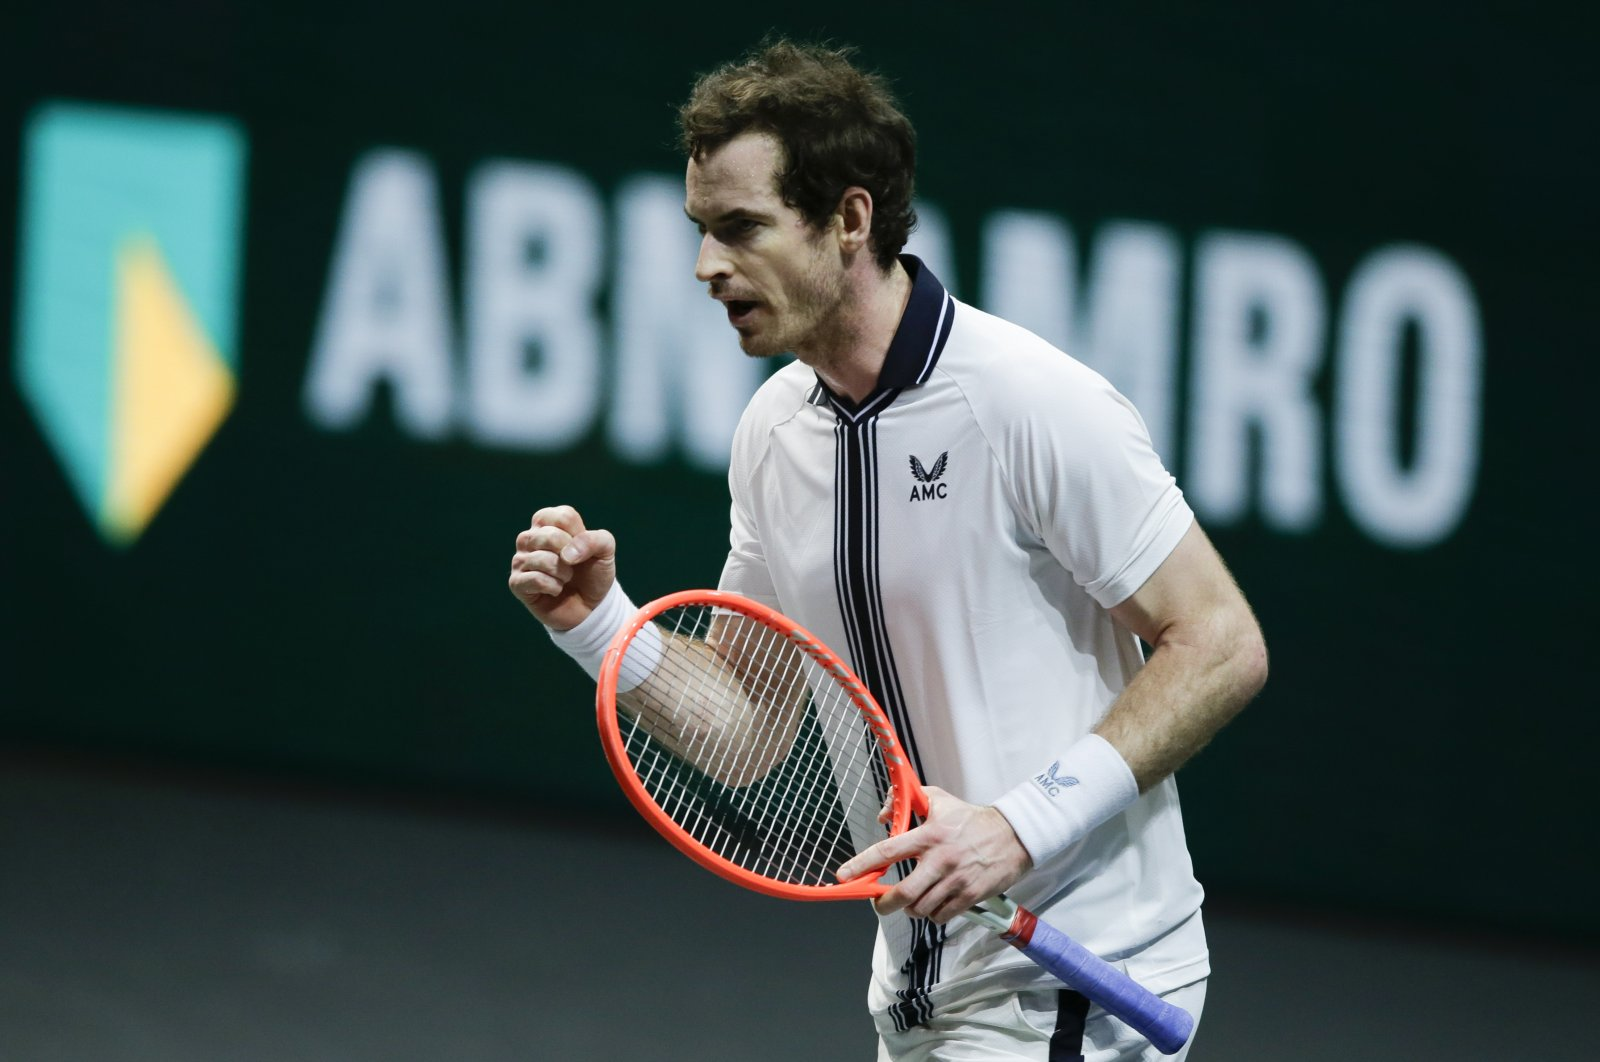 Britain's Andy Murray clenches his fist after defeating Netherland's Robin Haase in the ABN AMRO world tennis tournament at Ahoy Arena in Rotterdam, Netherlands, March 1, 2021. (AP Photo)